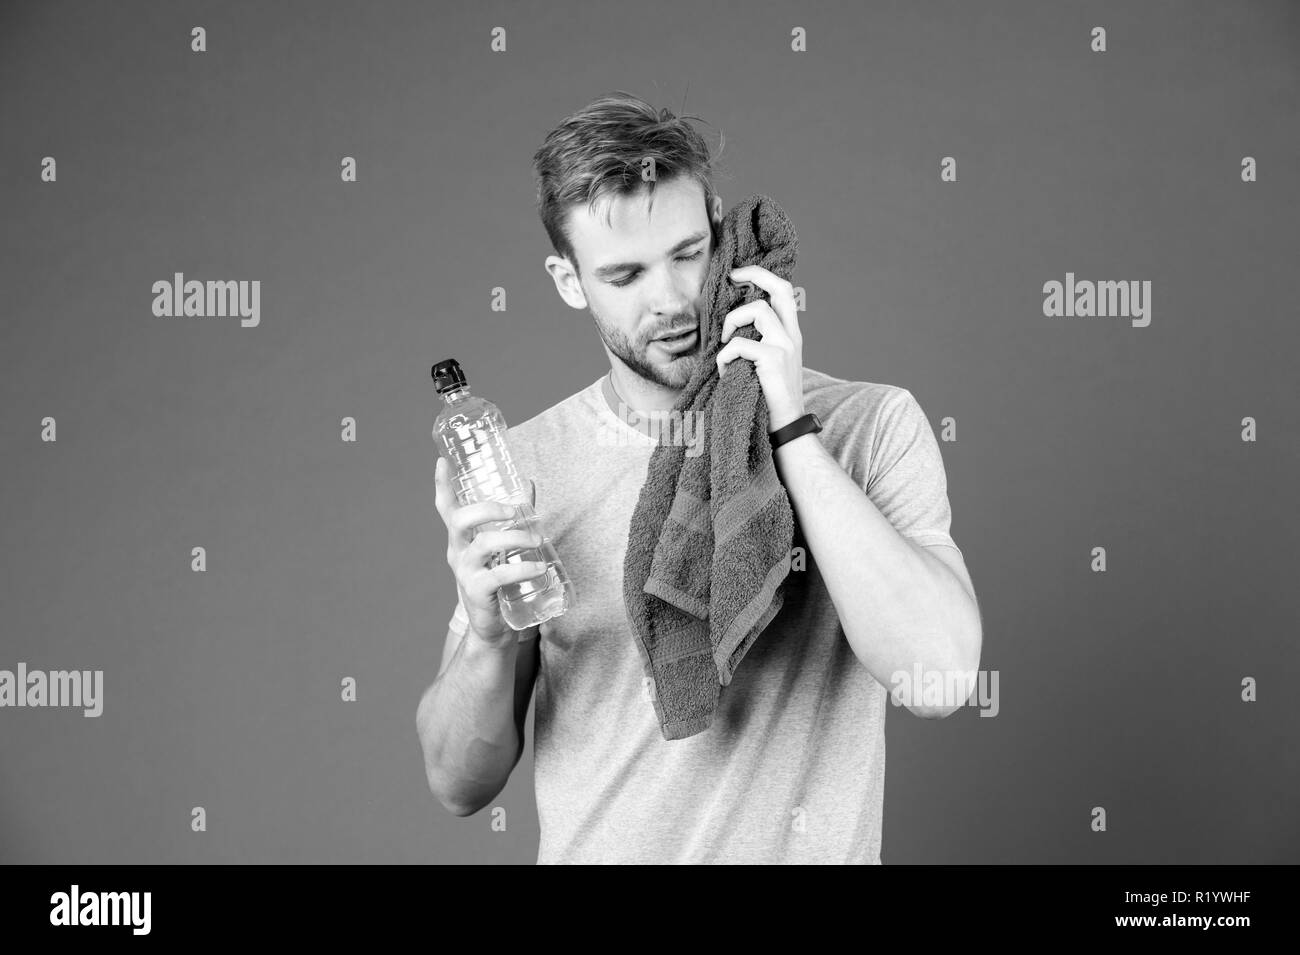 Athlete in blue tshirt and shorts with towel after training. Man hold water bottle on violet background. Sportsman with plastic bottle. Thirst and dehydration. Sport activity and energy. - Stock Image